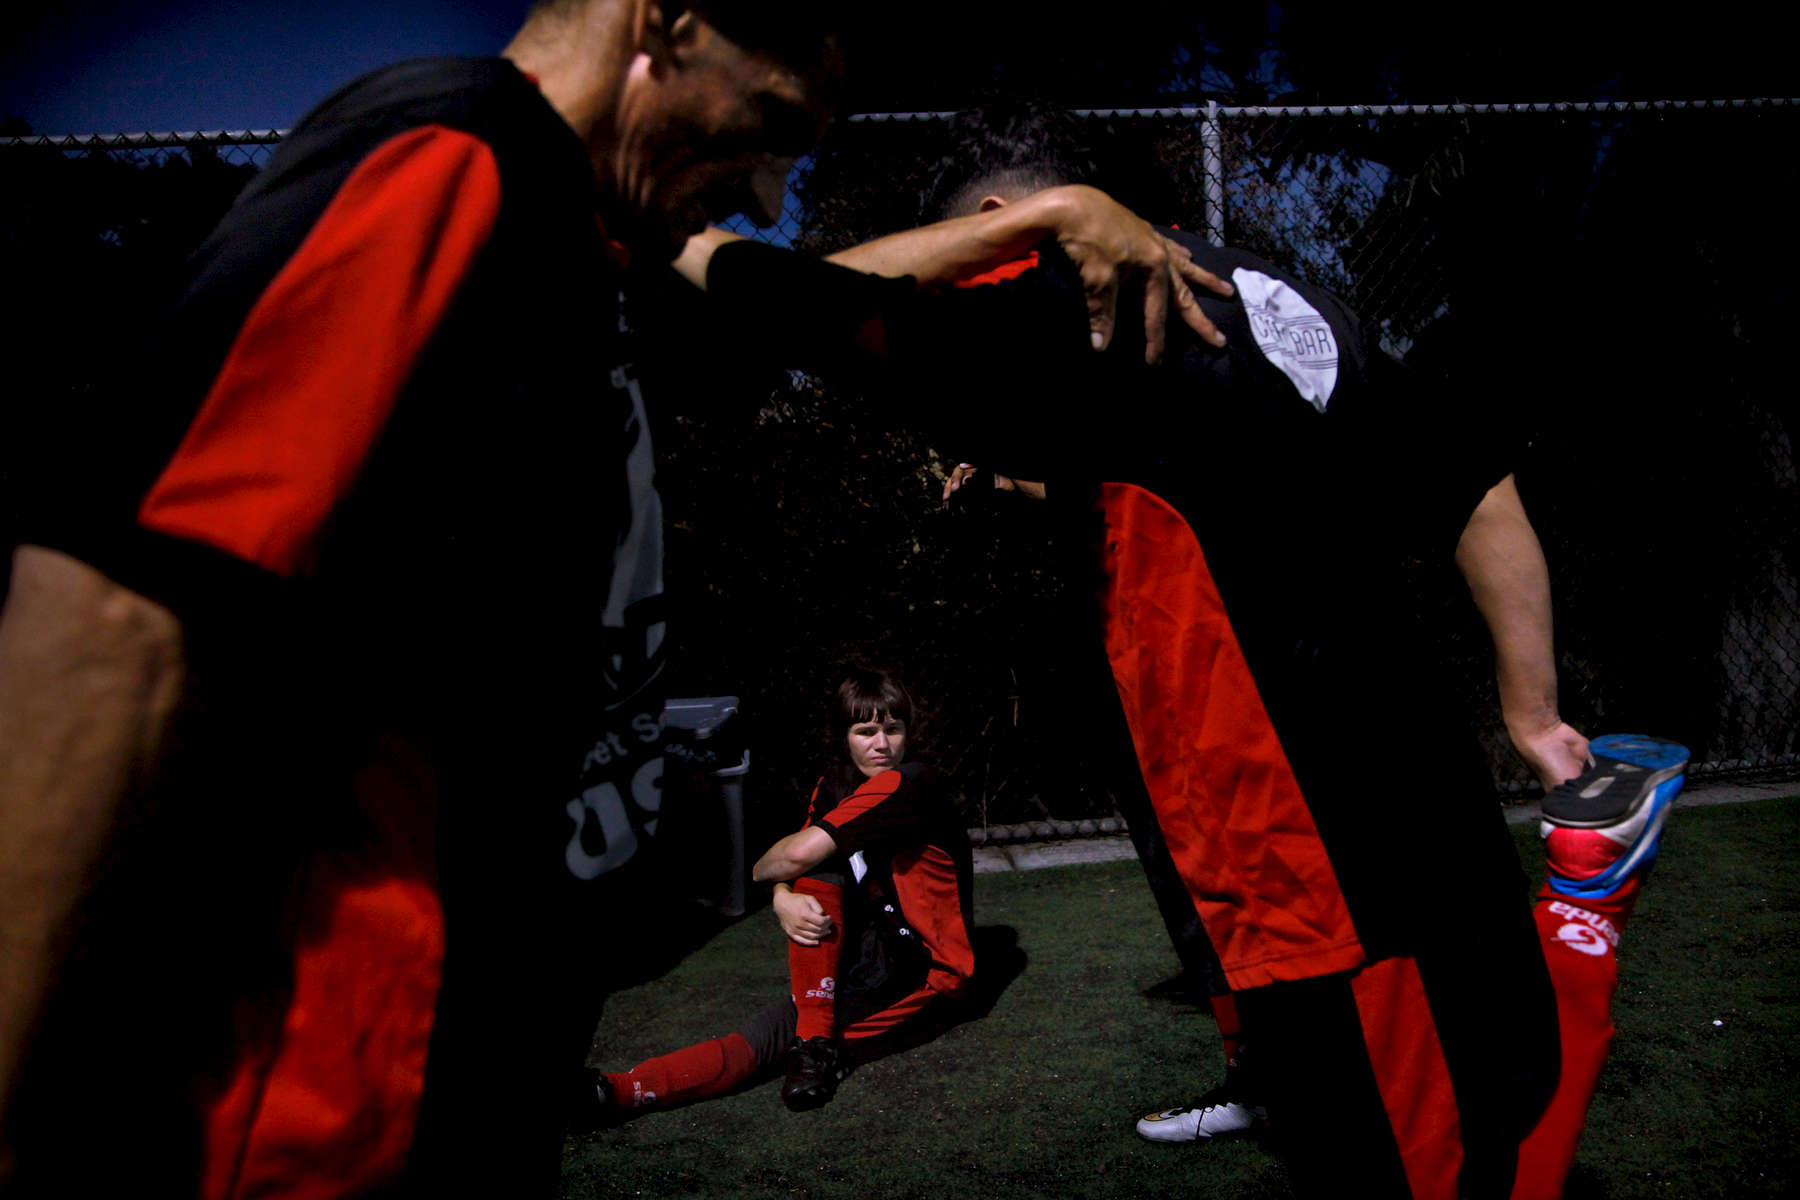 Isabella (center) and her teammates stretch before a Street Soccer game in San Francisco, Calif., on Thursday, October 22, 2015. Isabella describes the team as {quote}like the family you want to have.{quote}(Photo by Preston Gannaway © 2015)